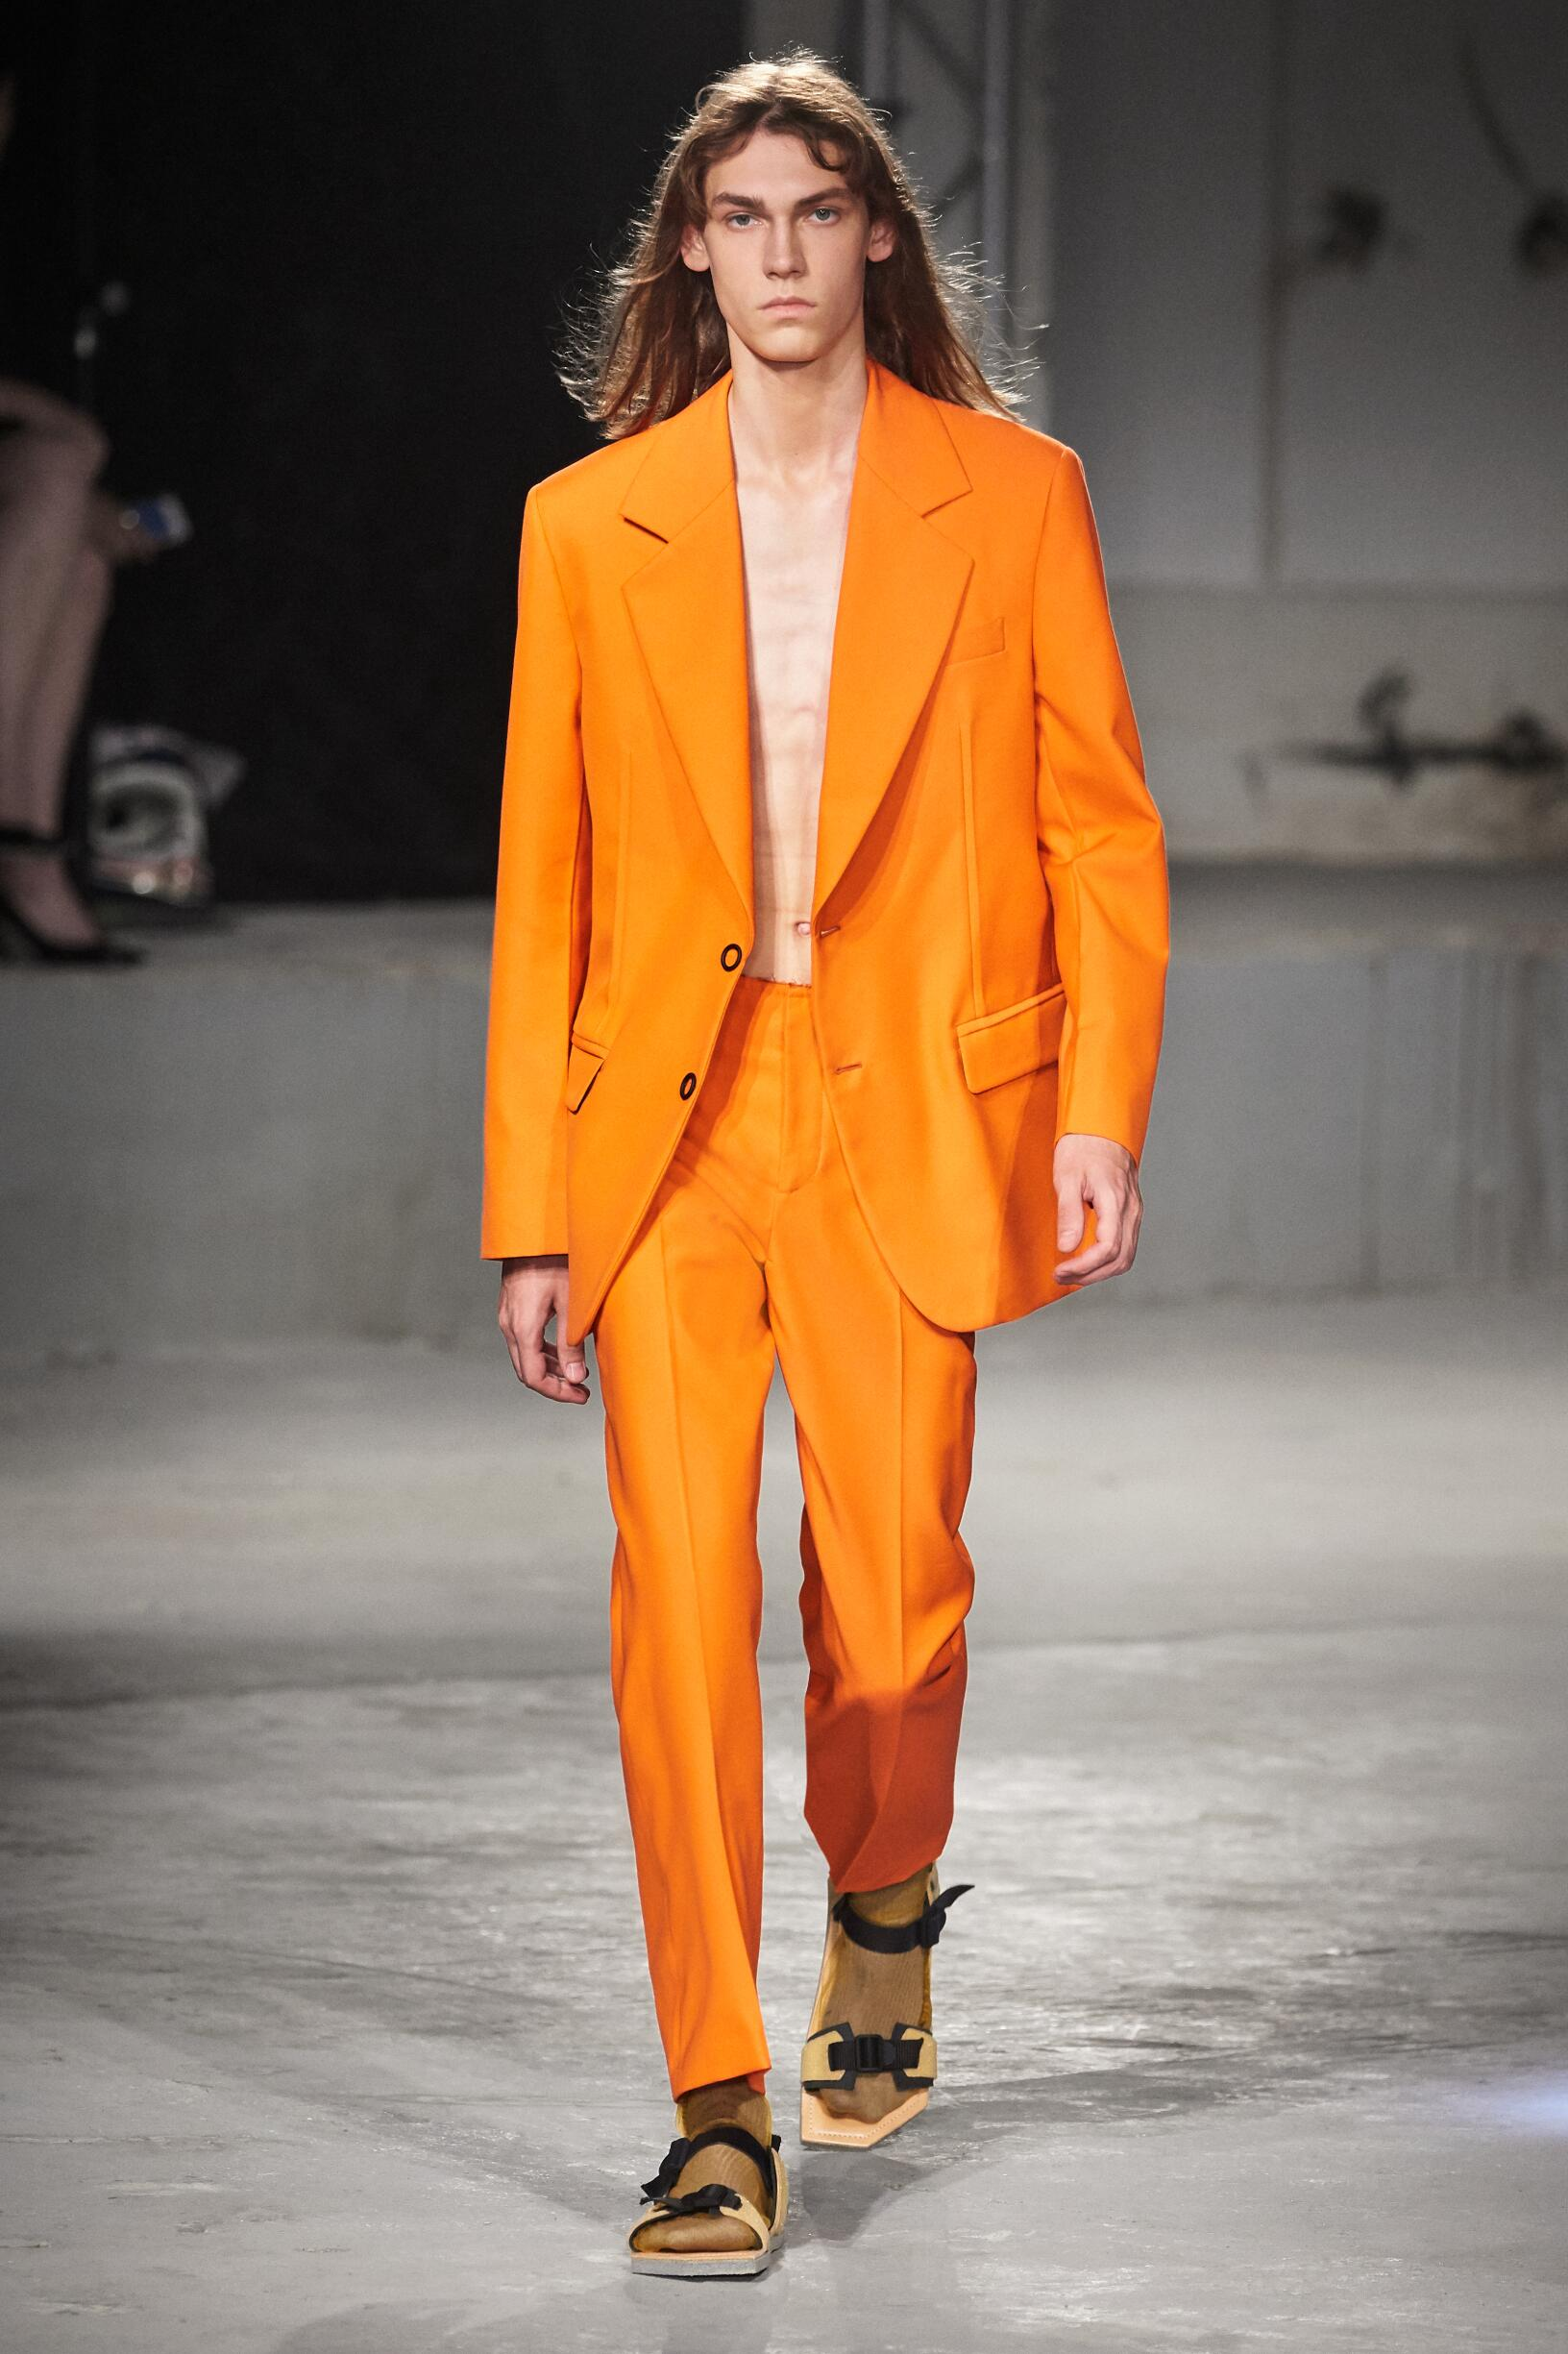 Fashion Model Acne Studios Catwalk